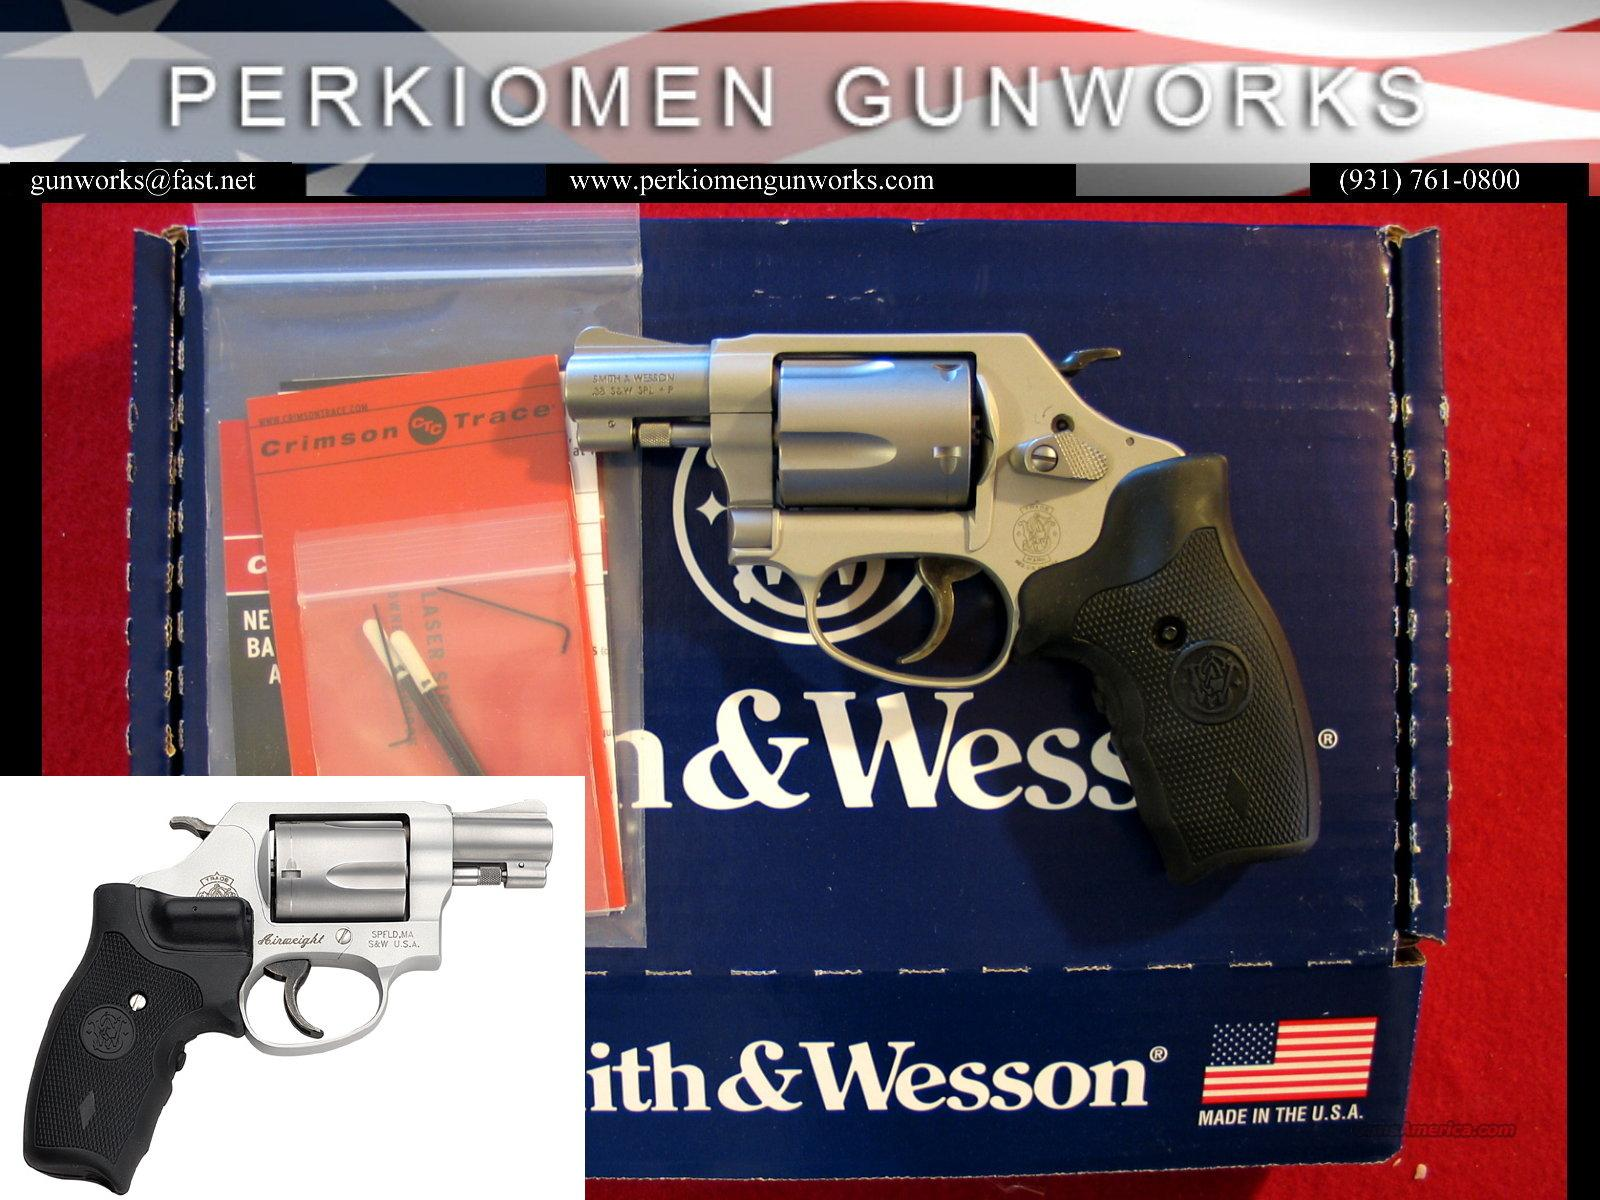 637 CT Airweight 38SP+P Chiefs Special, Laser Grips - NIB  Guns > Pistols > Smith & Wesson Revolvers > Pocket Pistols